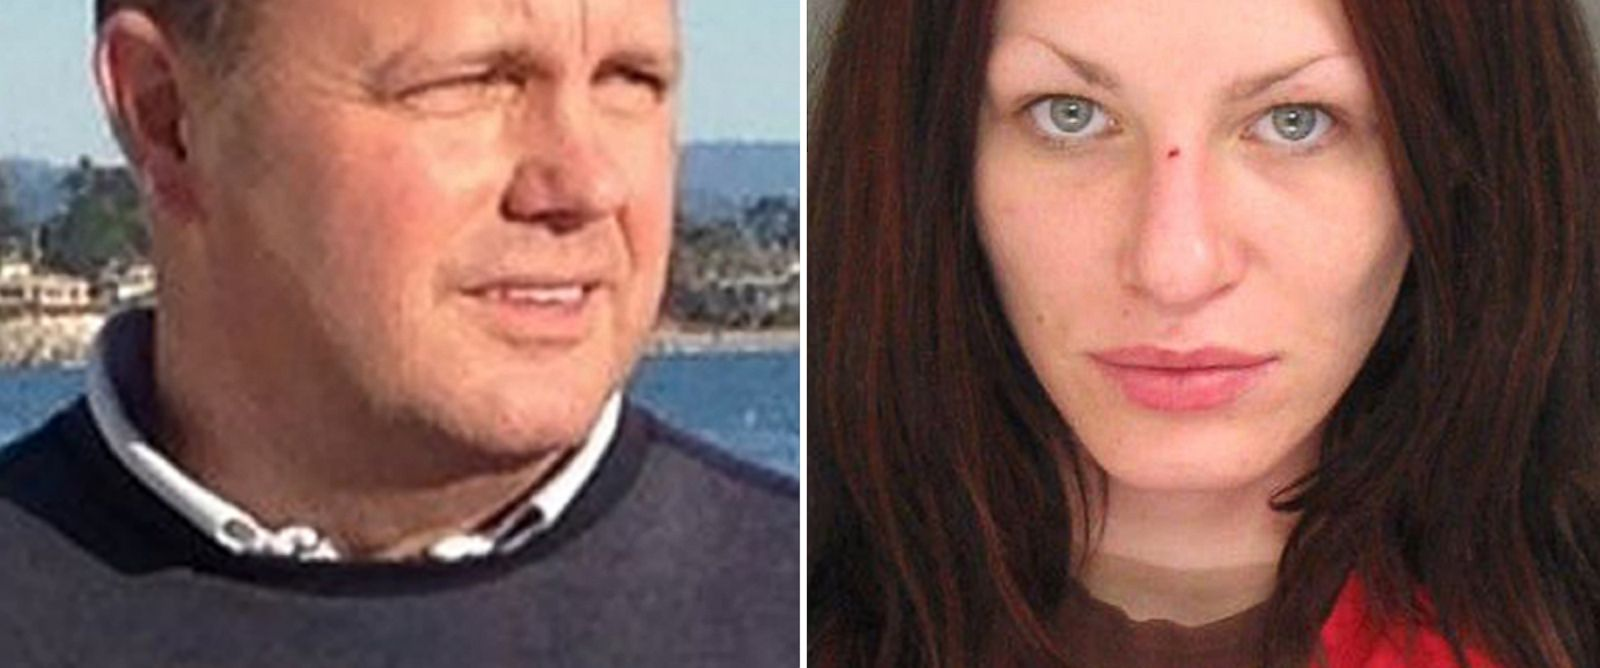 PHOTO: Forrest Hayes was found dead on his yacht of an apparent overdose. Right, Alix Tichelman, is seen here in a police mug shot from Santa Cruz Police Dept.